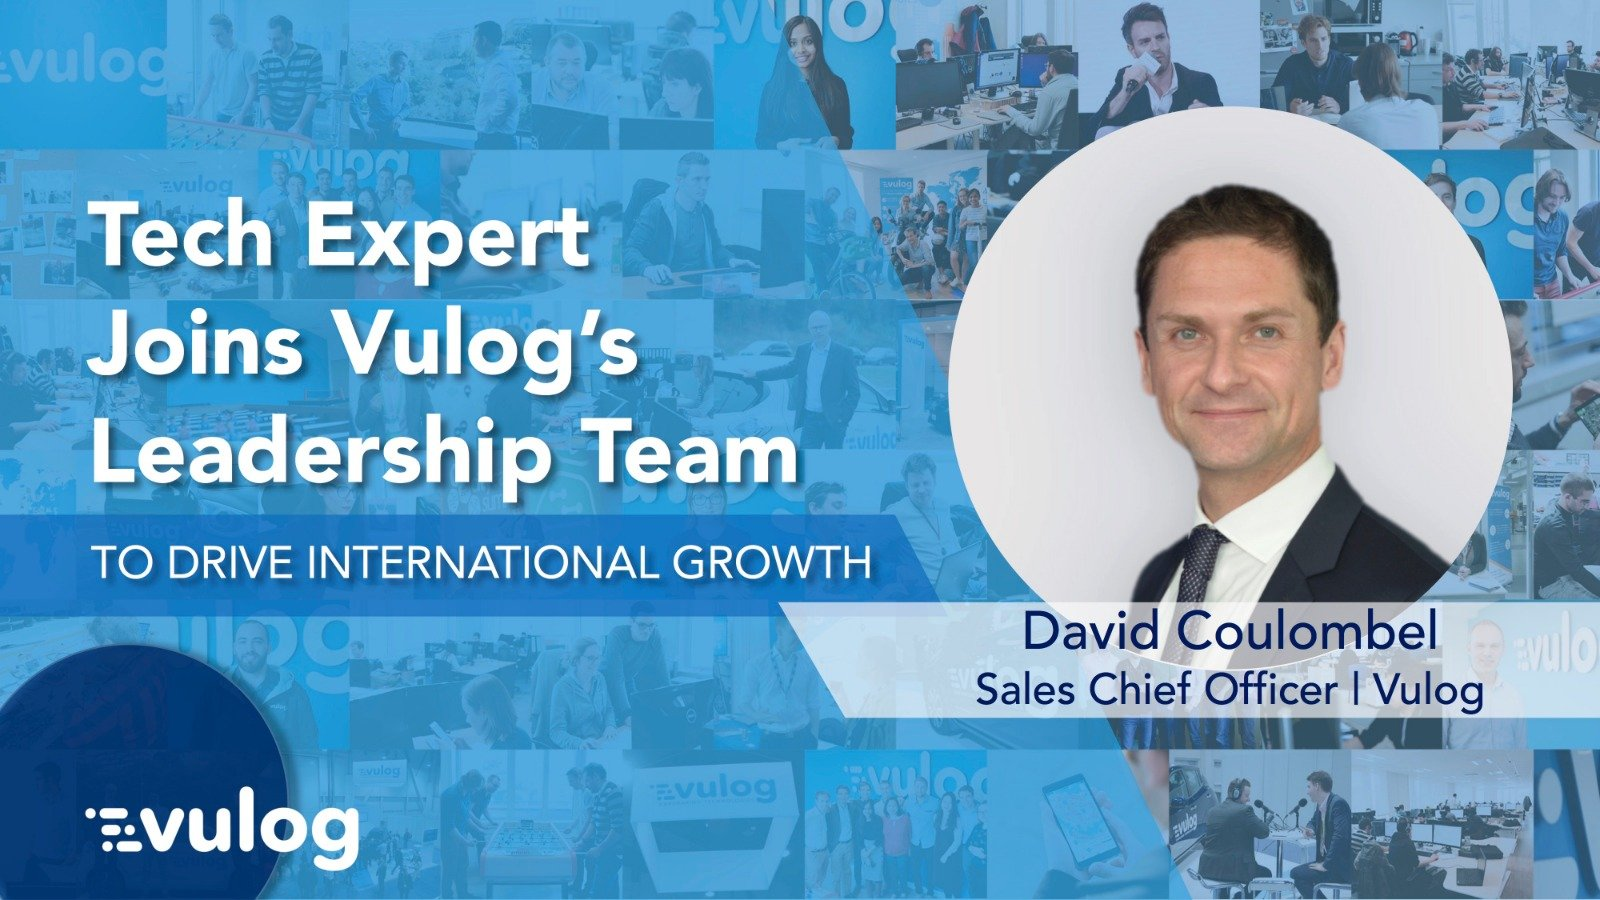 Tech Expert Joins Vulog: Chief Sales Officer - David Coulombel